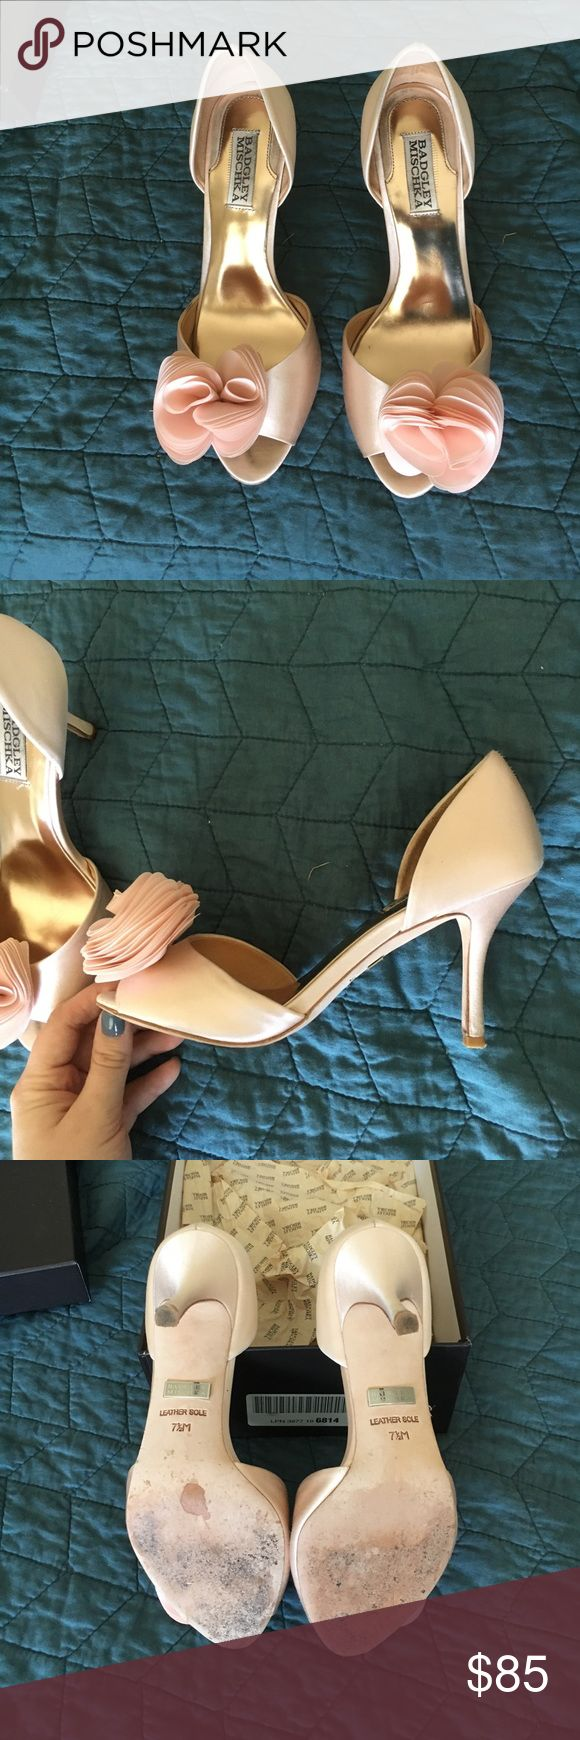 """Badgley Mischka - Thora heels pink satin Super fun and cute pink heels- Worn once on my wedding day. Minimal noticeable damage. Mainly the heel has grass stains most on the left shoe.  The toe/ heel is worn but can't be seen when worn. I loved the height of this shoe so much - 3 1/4"""" - very manageable for all day wear and I loved the pop of feminine color for the wedding day. :) comes with additional heel pegs, box and paper inserts. I wear a 7.5/8 and these fit perfectly so they run pretty…"""